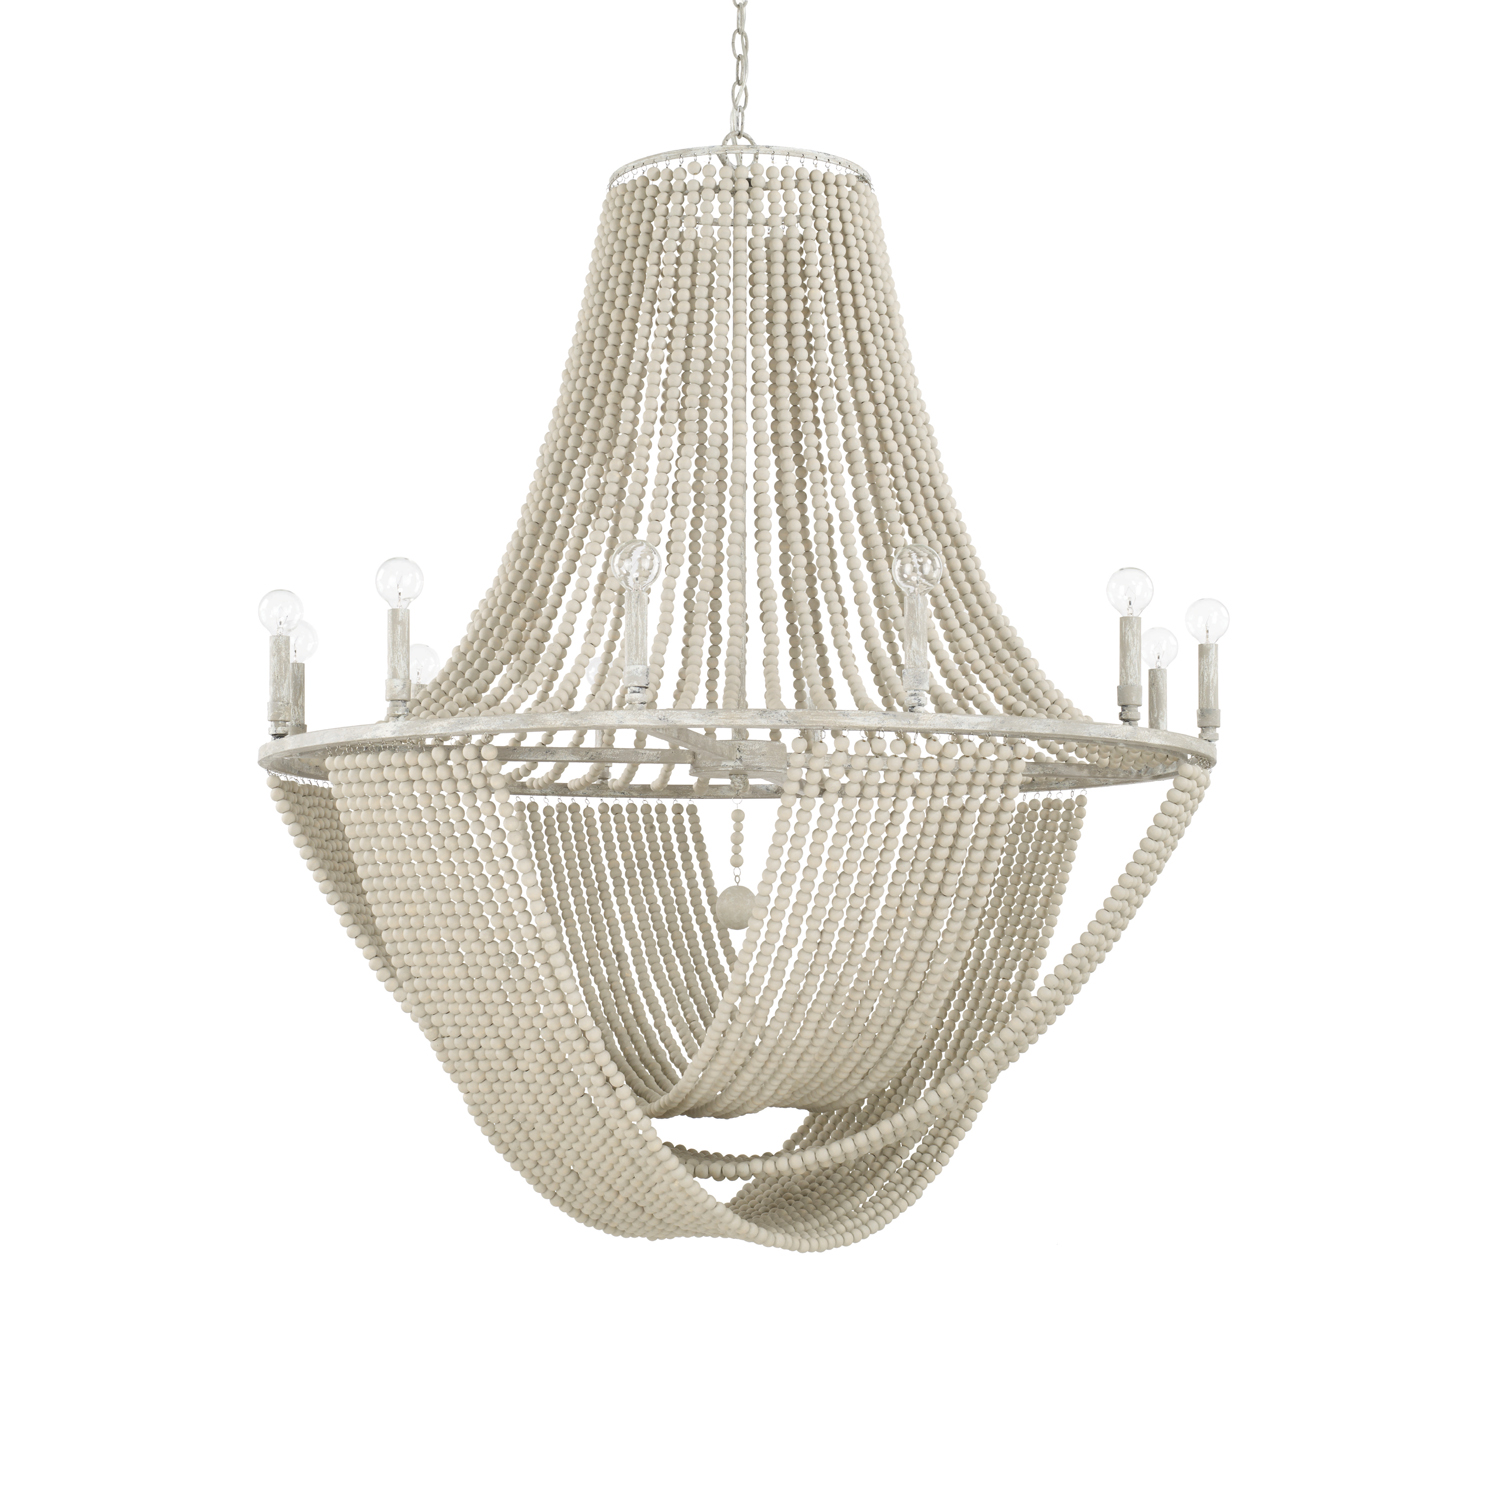 12 Light Chandelier from the Kayla collection by Capital Lighting 429501MS